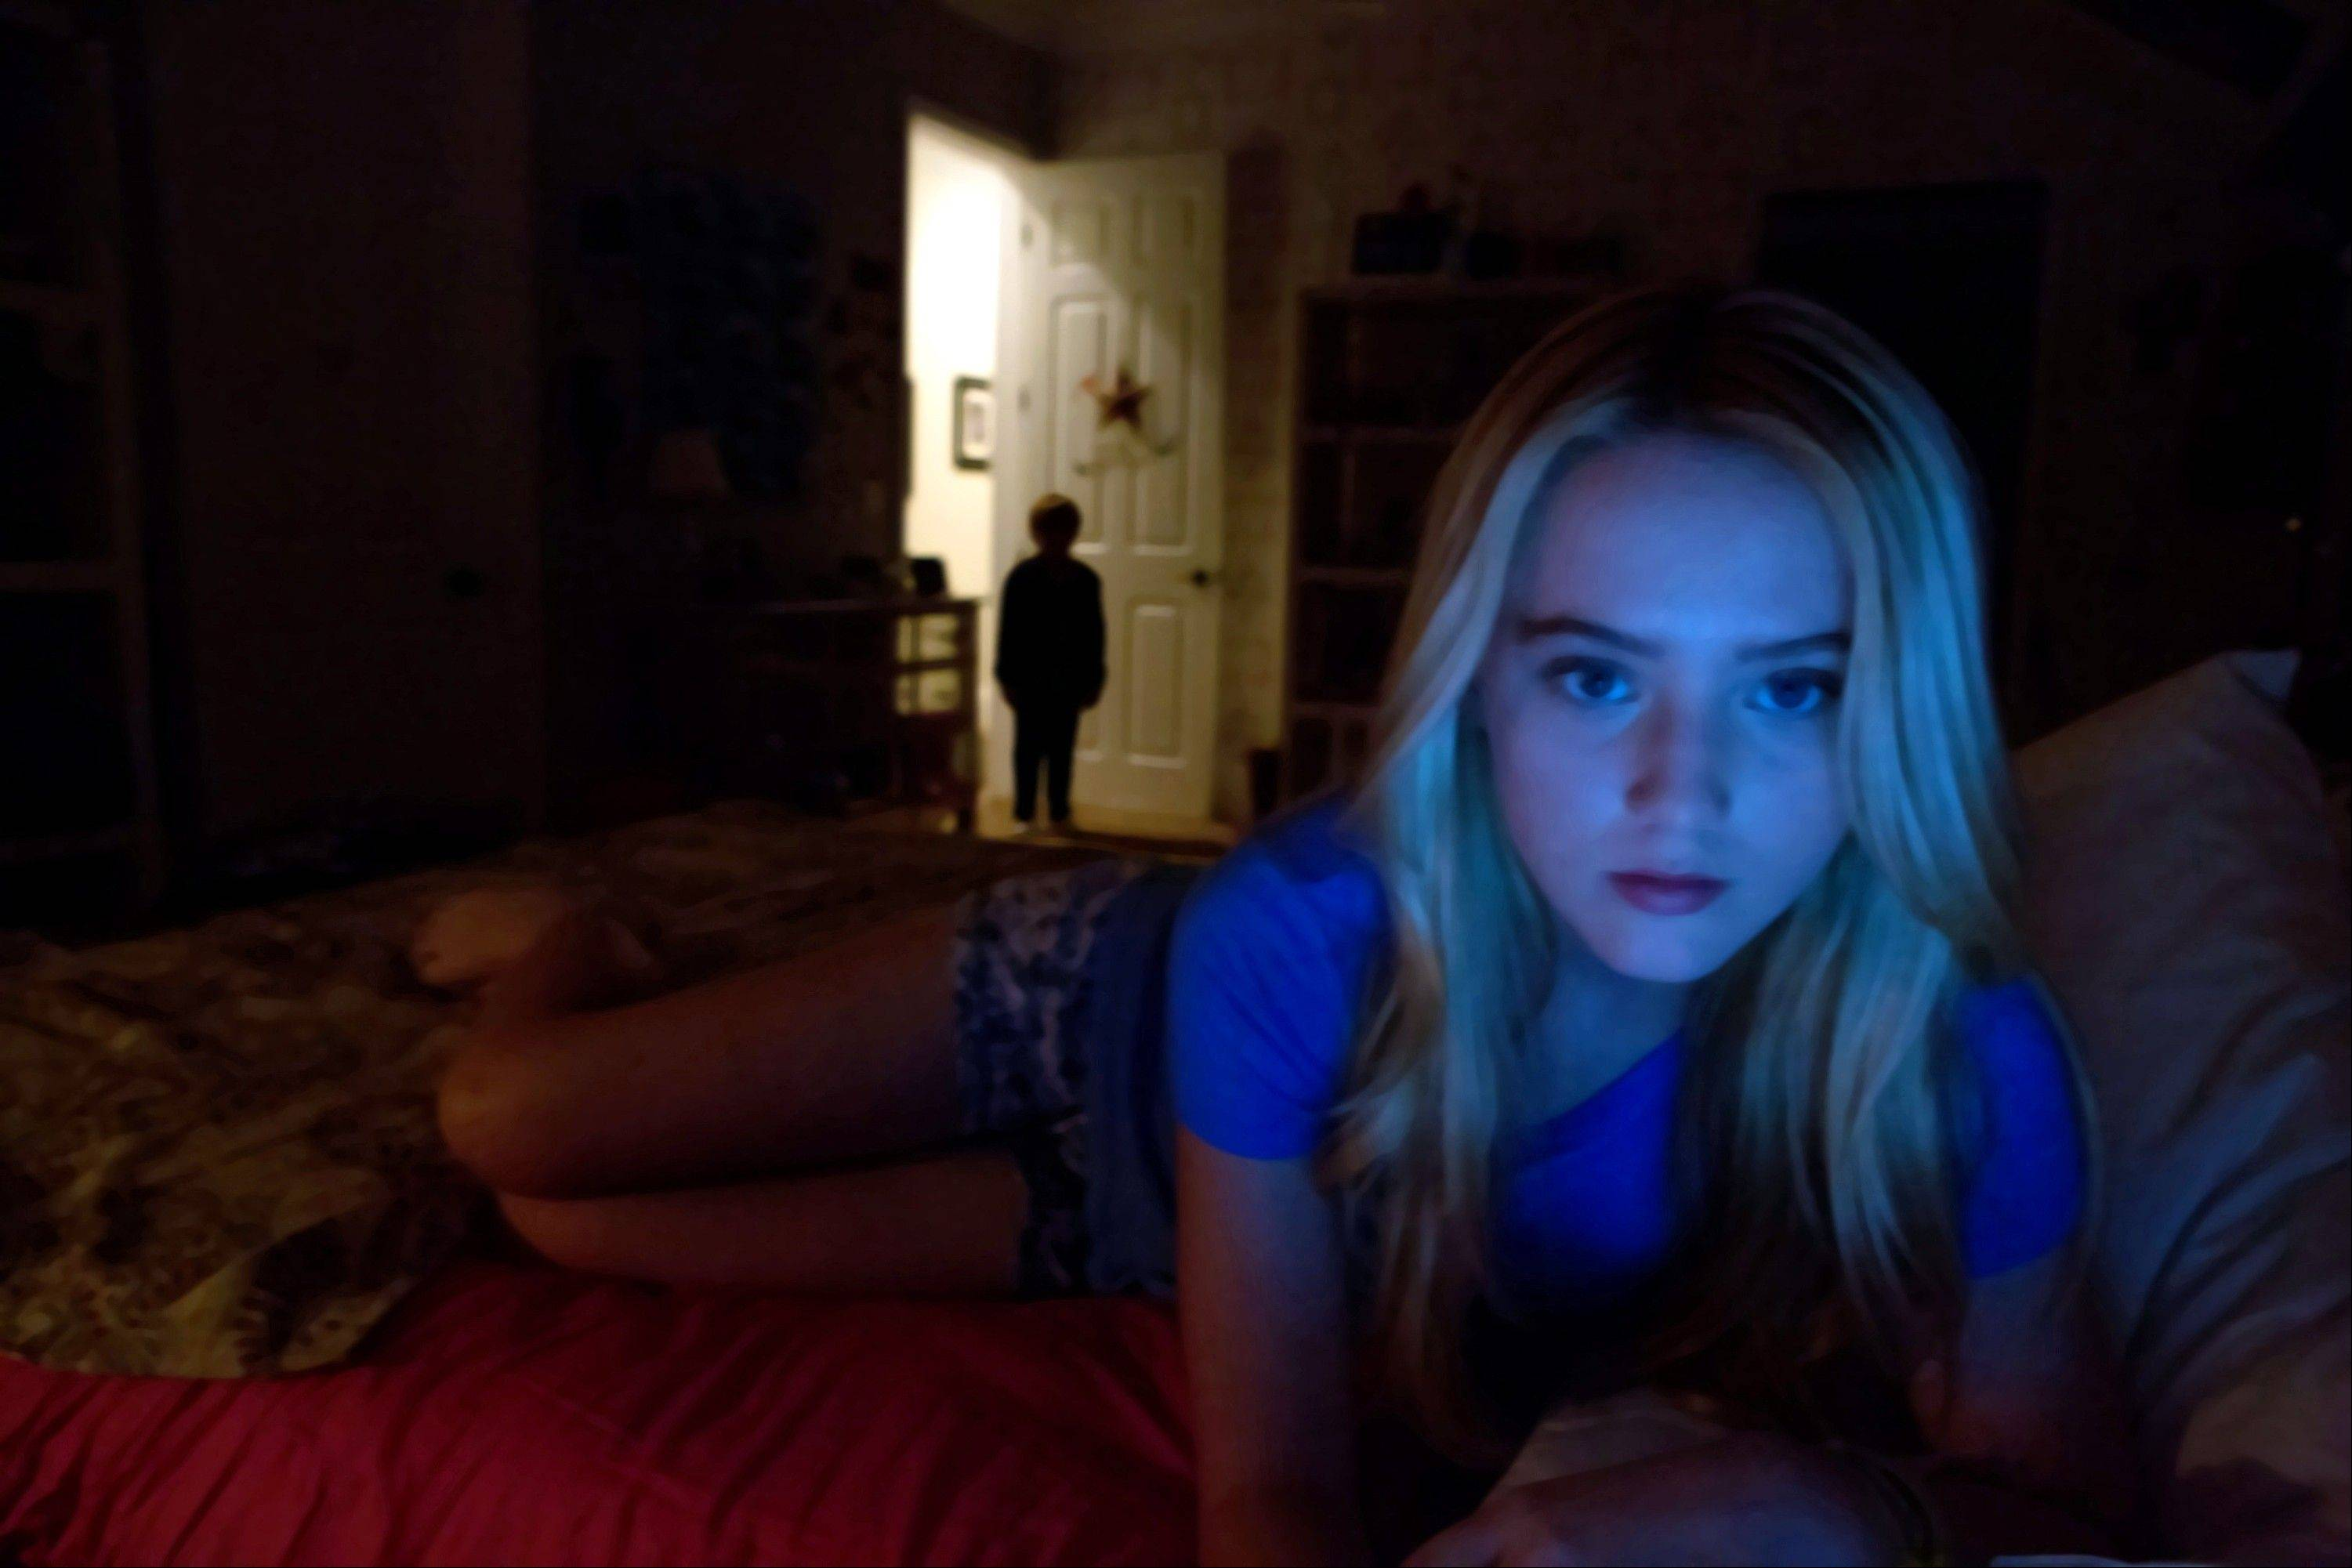 """Paranormal Activity 4"" debuted in the No. 1 box-office spot, taking in $30.2 million this weekend."